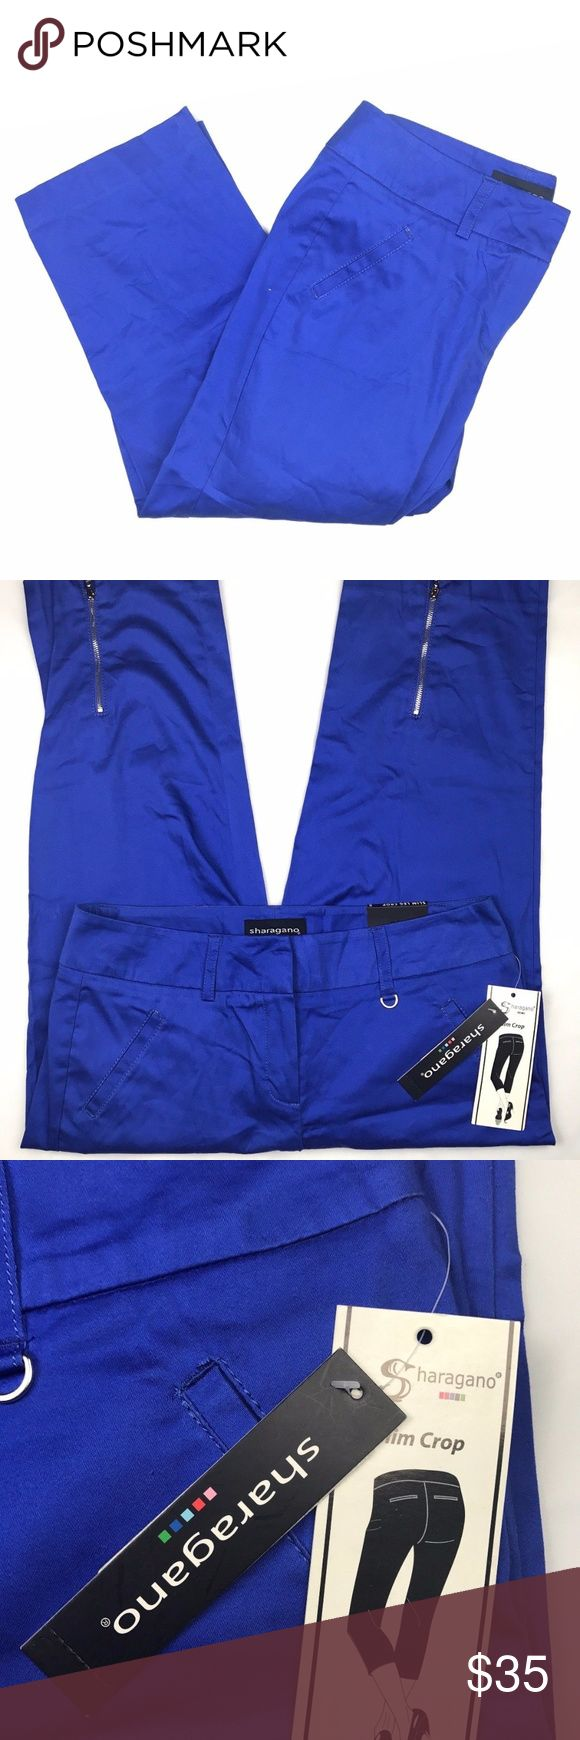 Sharagano Size 8 Slim Leg Blue Chino Crop Pants Sharagano Size 8 Slim Leg Crop Sits Below the Waist Blue Chinos Women's Pants. Zippers at ankles. New With Tags. 97% Cotton 3%Spandex Original price: $70 Sharagano Pants Ankle & Cropped